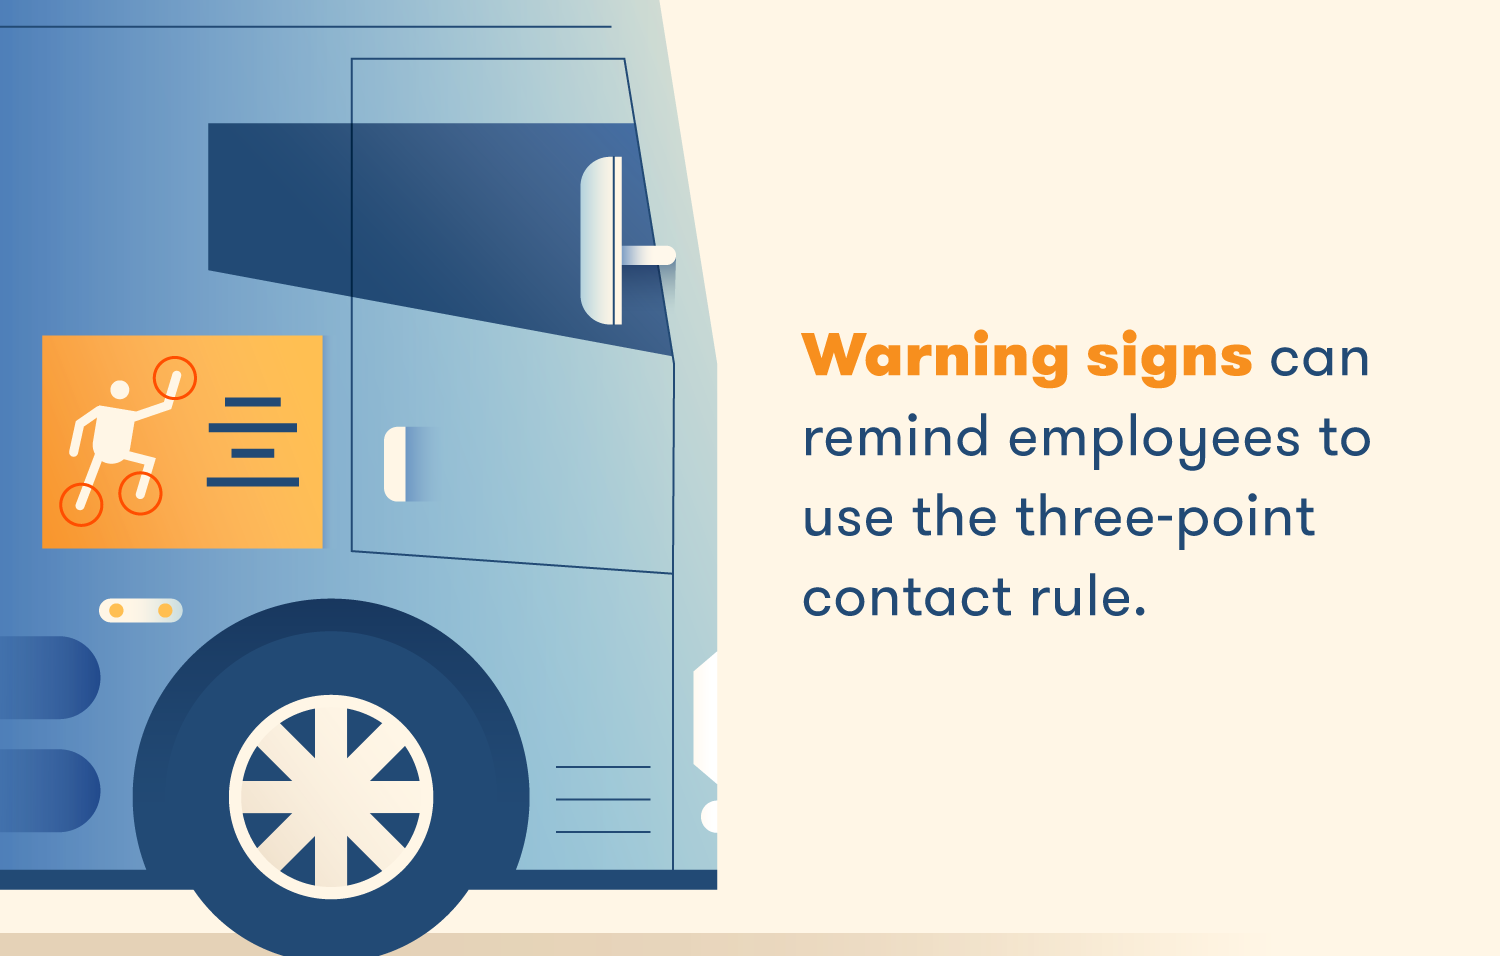 Warning signs can remind employees to use the three-point contact rule.